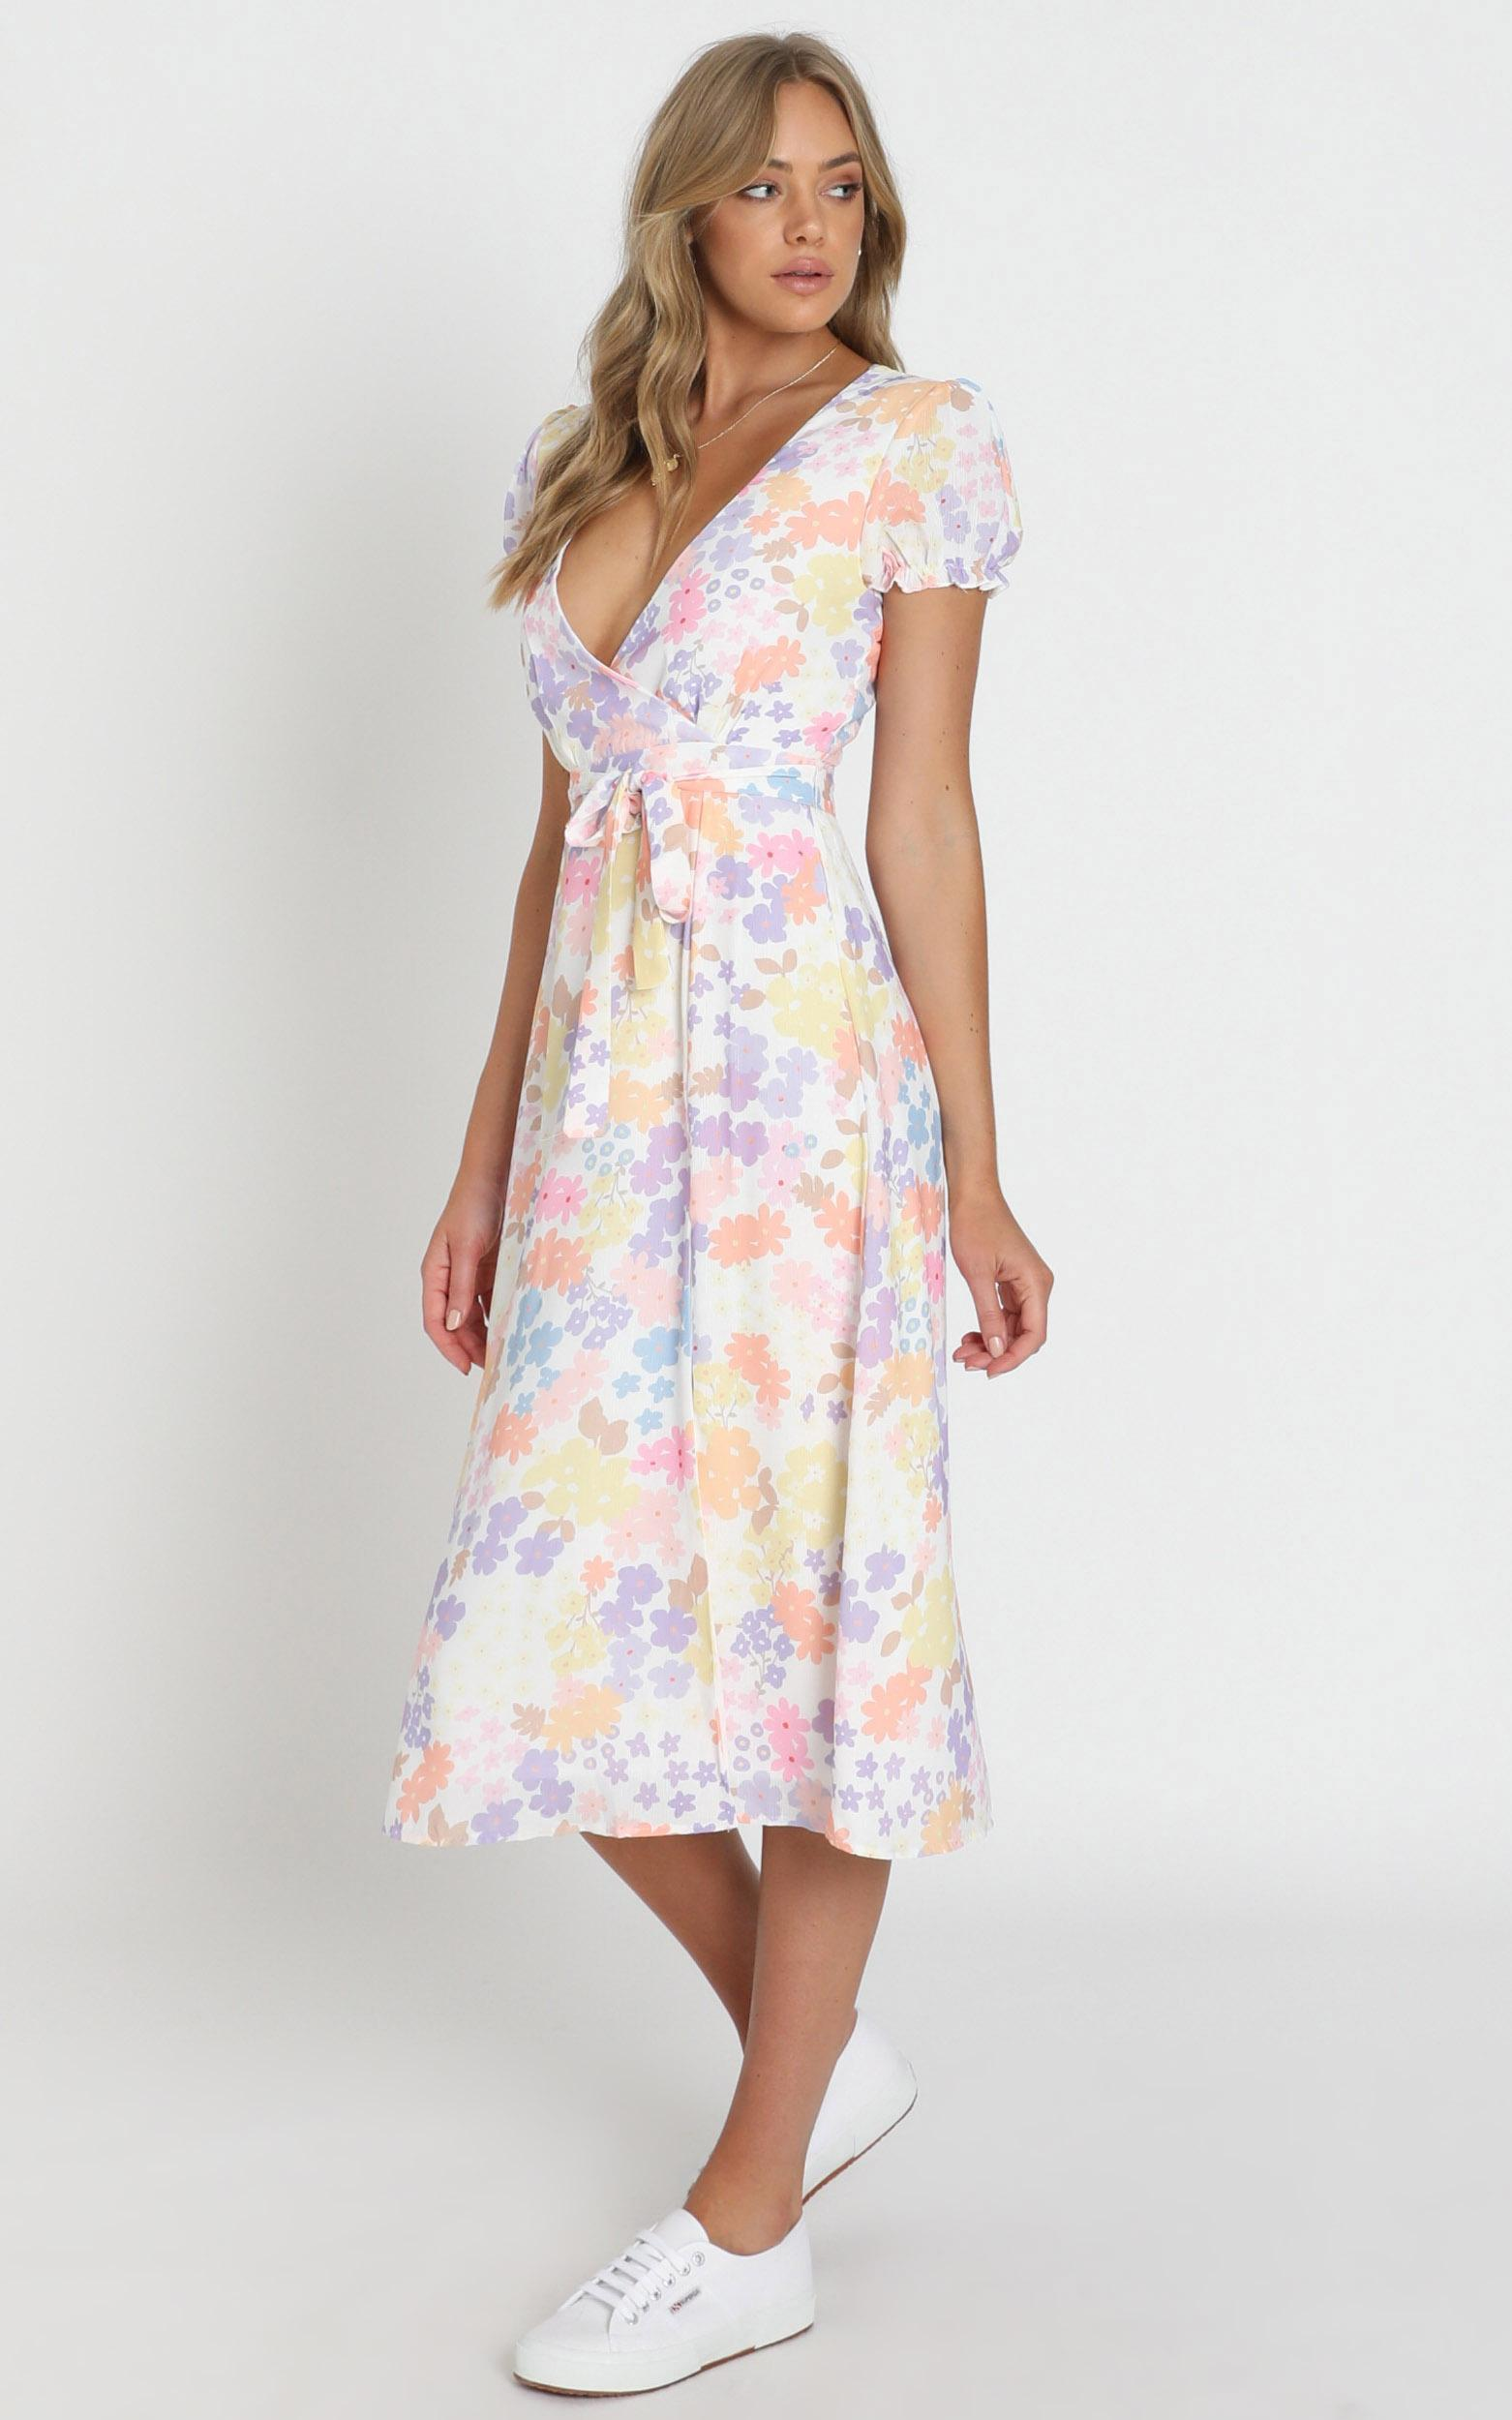 Sudden Life Dress in white floral - 20 (XXXXL), White, hi-res image number null